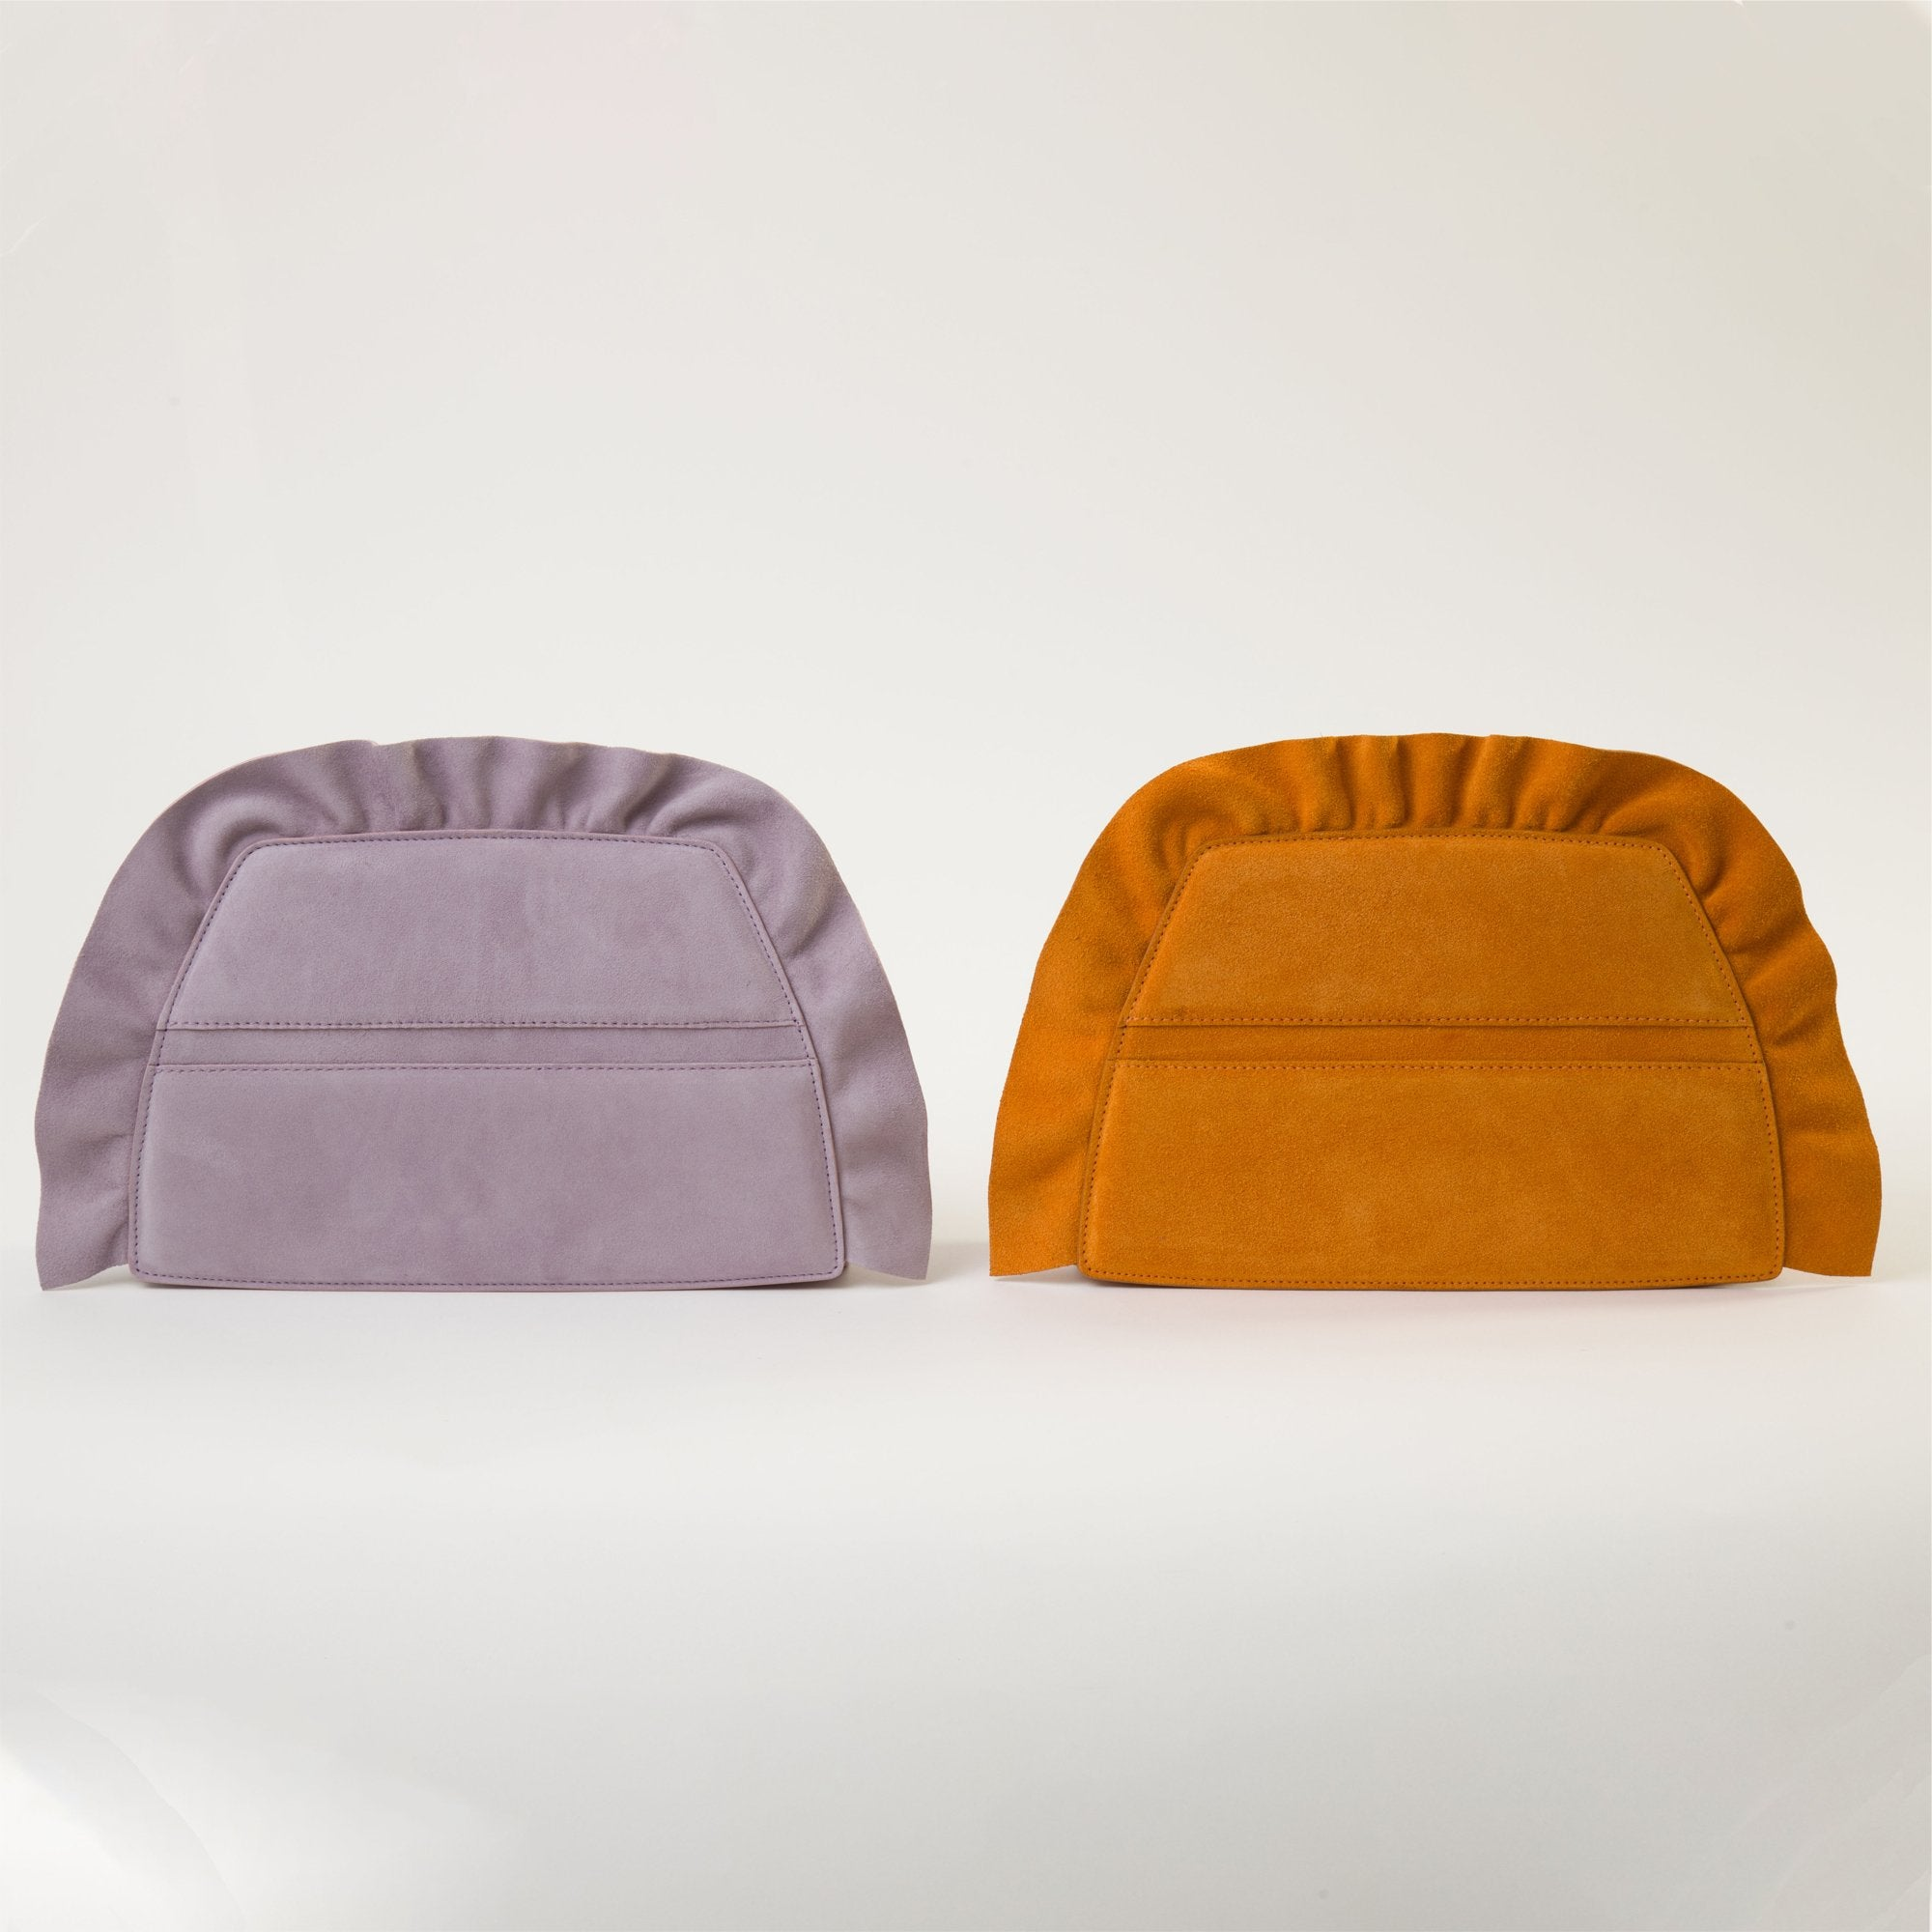 CHERUBIM SUEDE ORANGE CONVERTIBLE CLUTCH - MDLR